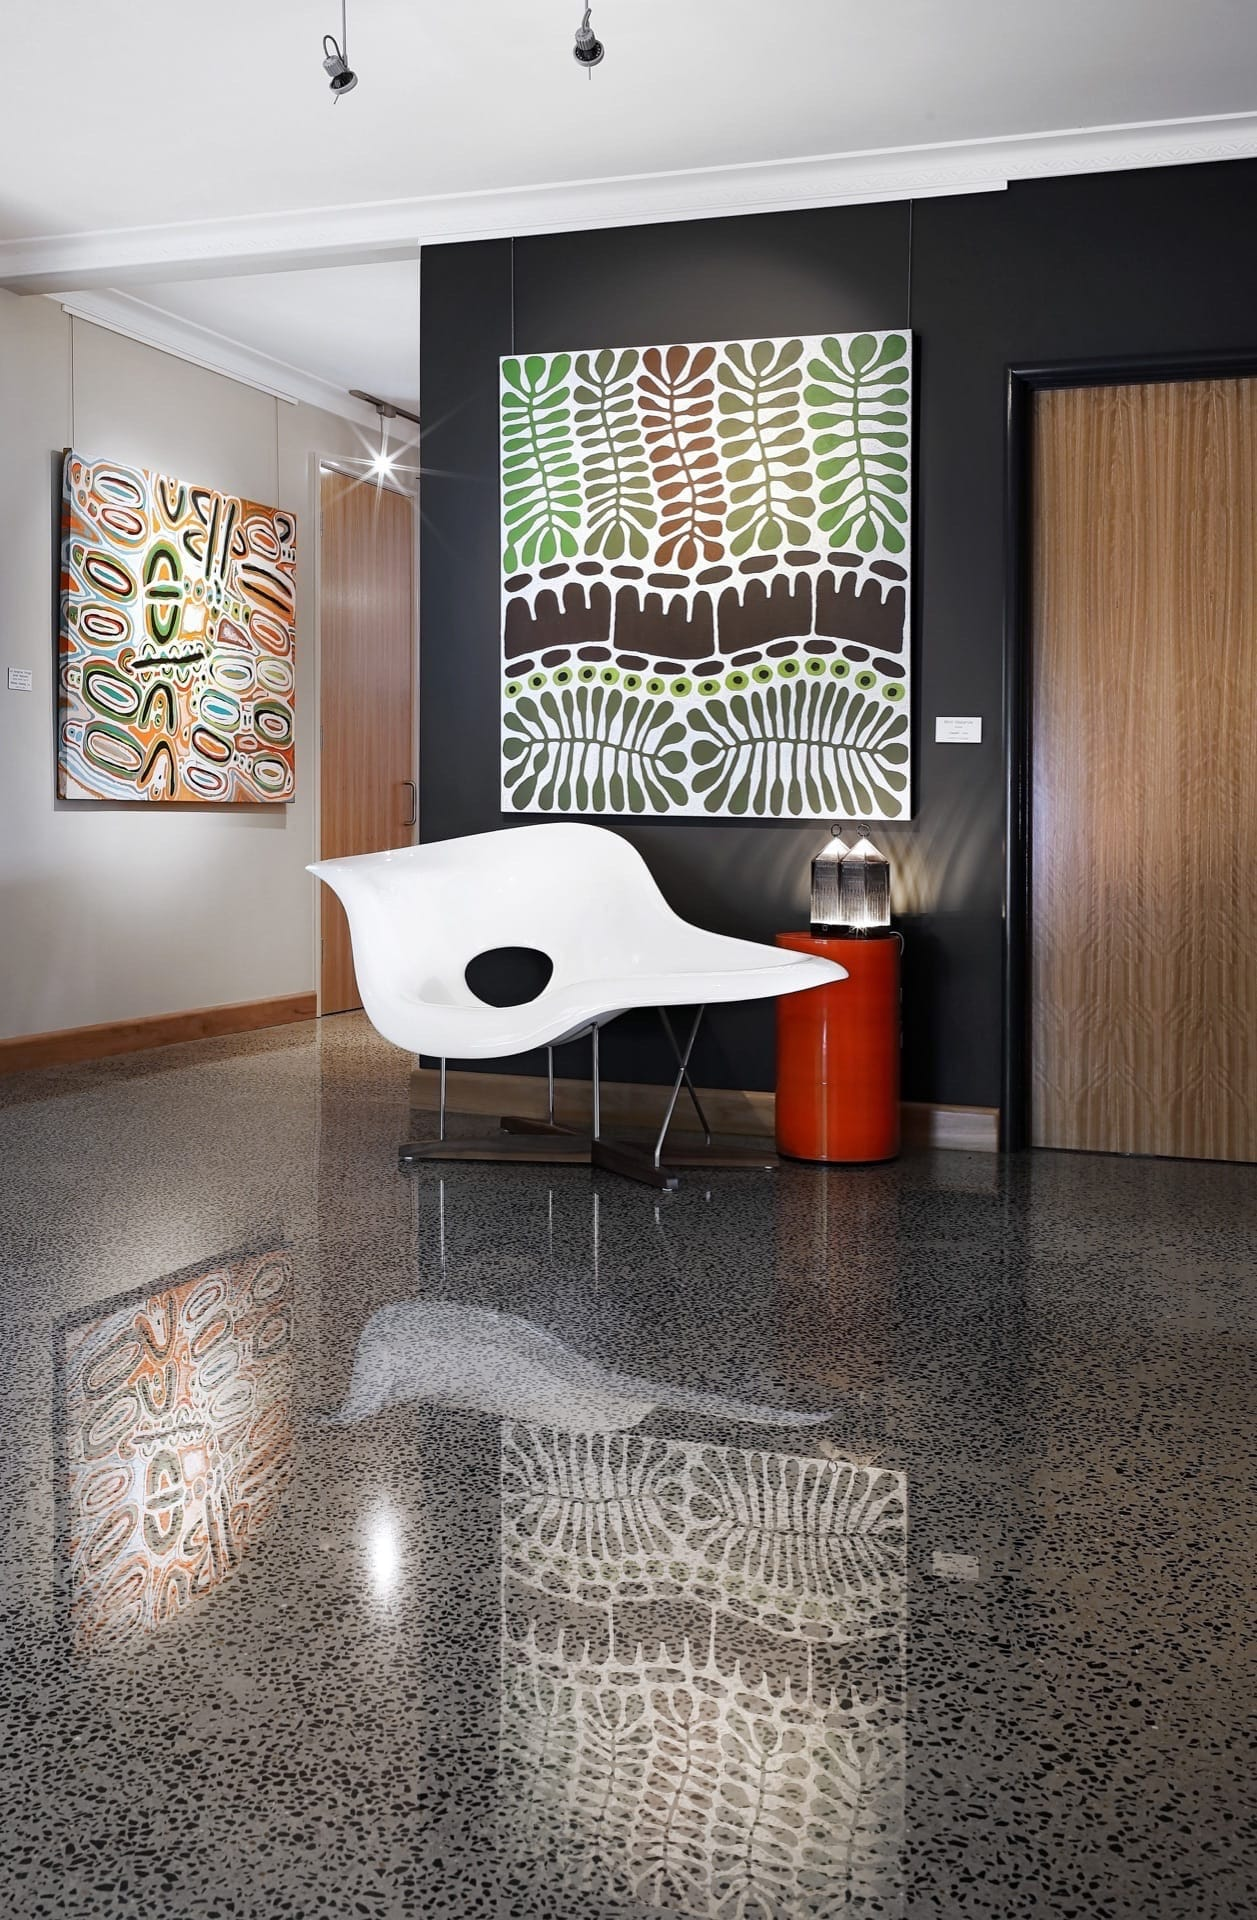 Concrete polishing for residential and commercial floors on the Sunshine Coast and Brisbane. - Honed & Polished Concrete